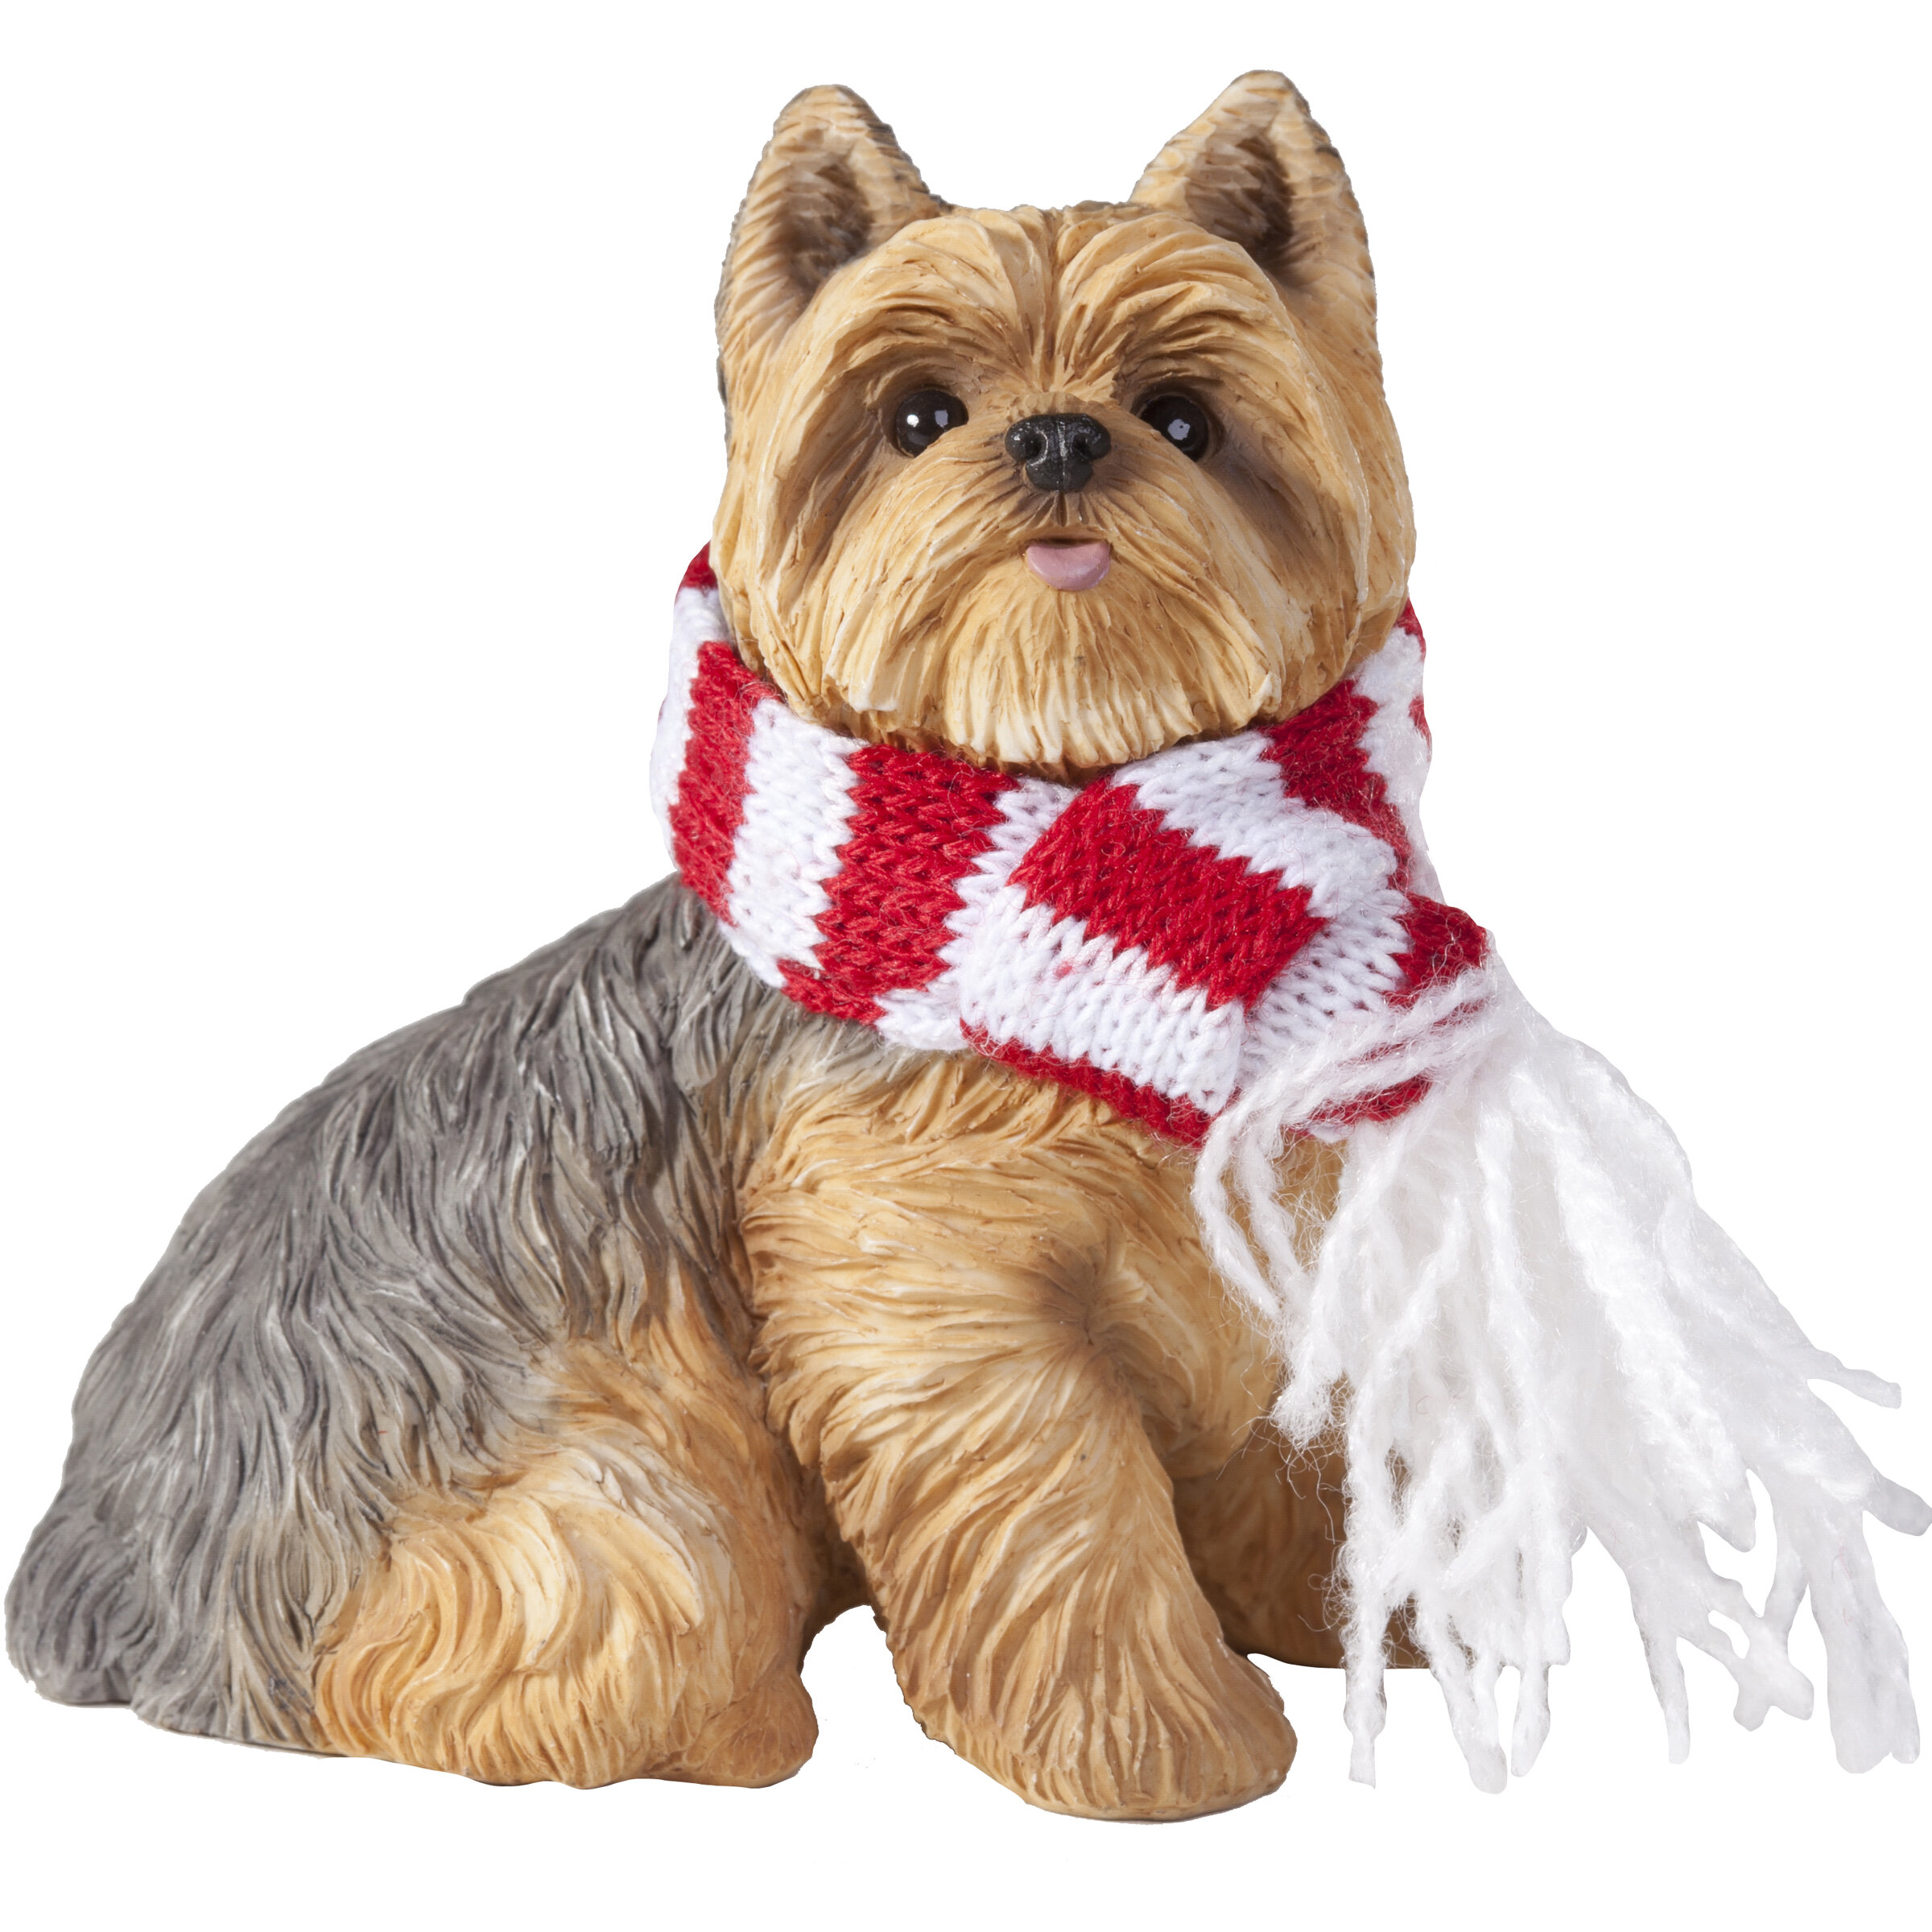 Sandicast Yorkshire Terrier Christmas Tree Ornament & Reviews | Wayfair